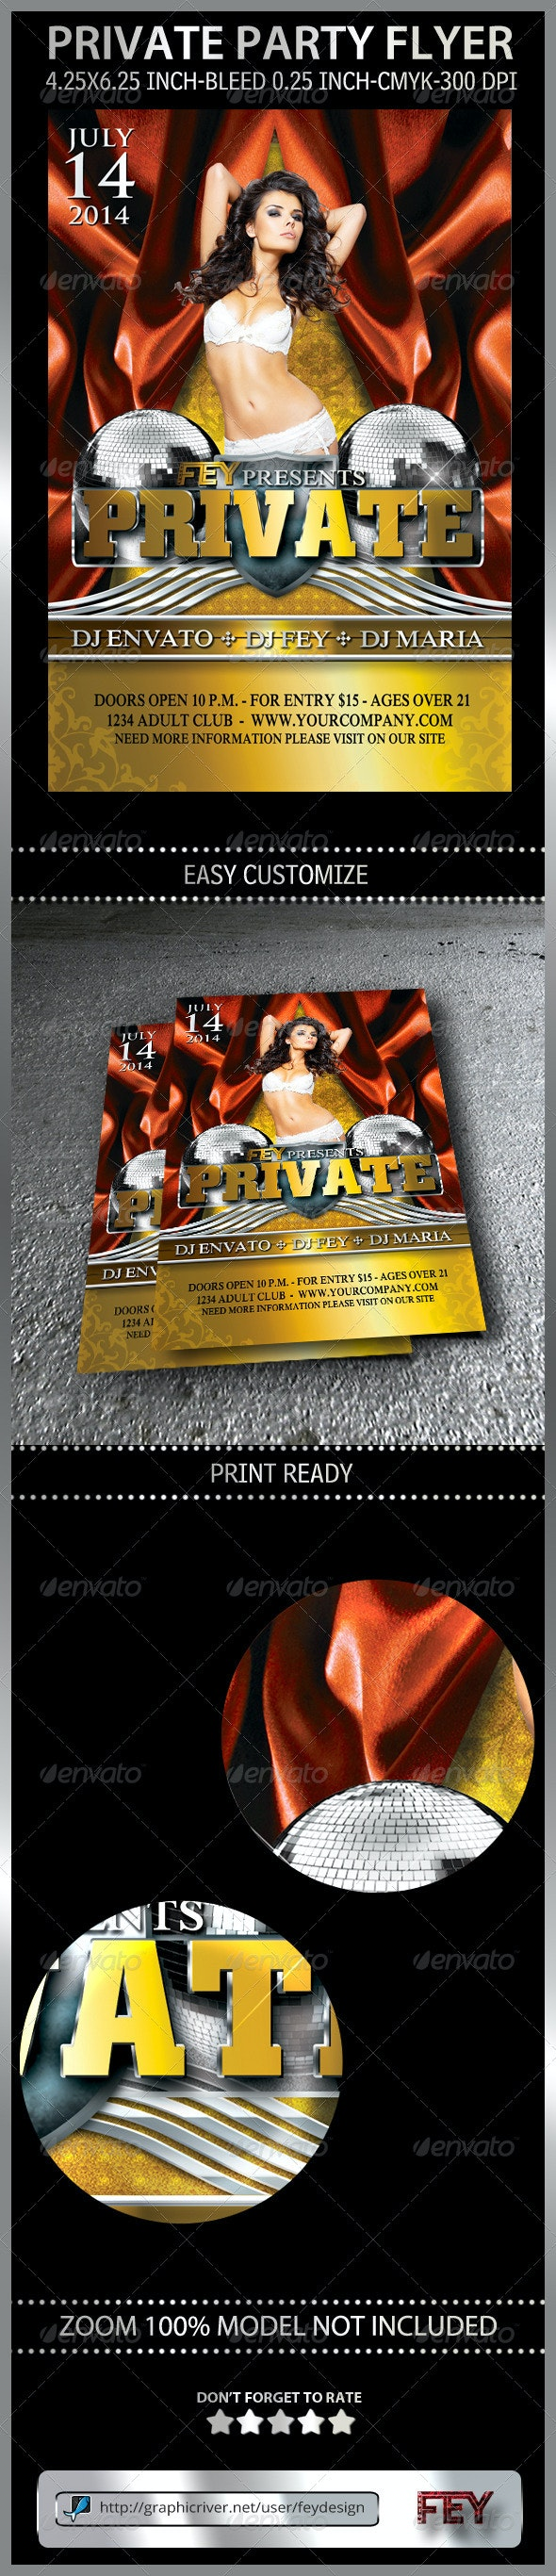 Private Party Flyer - Print Templates